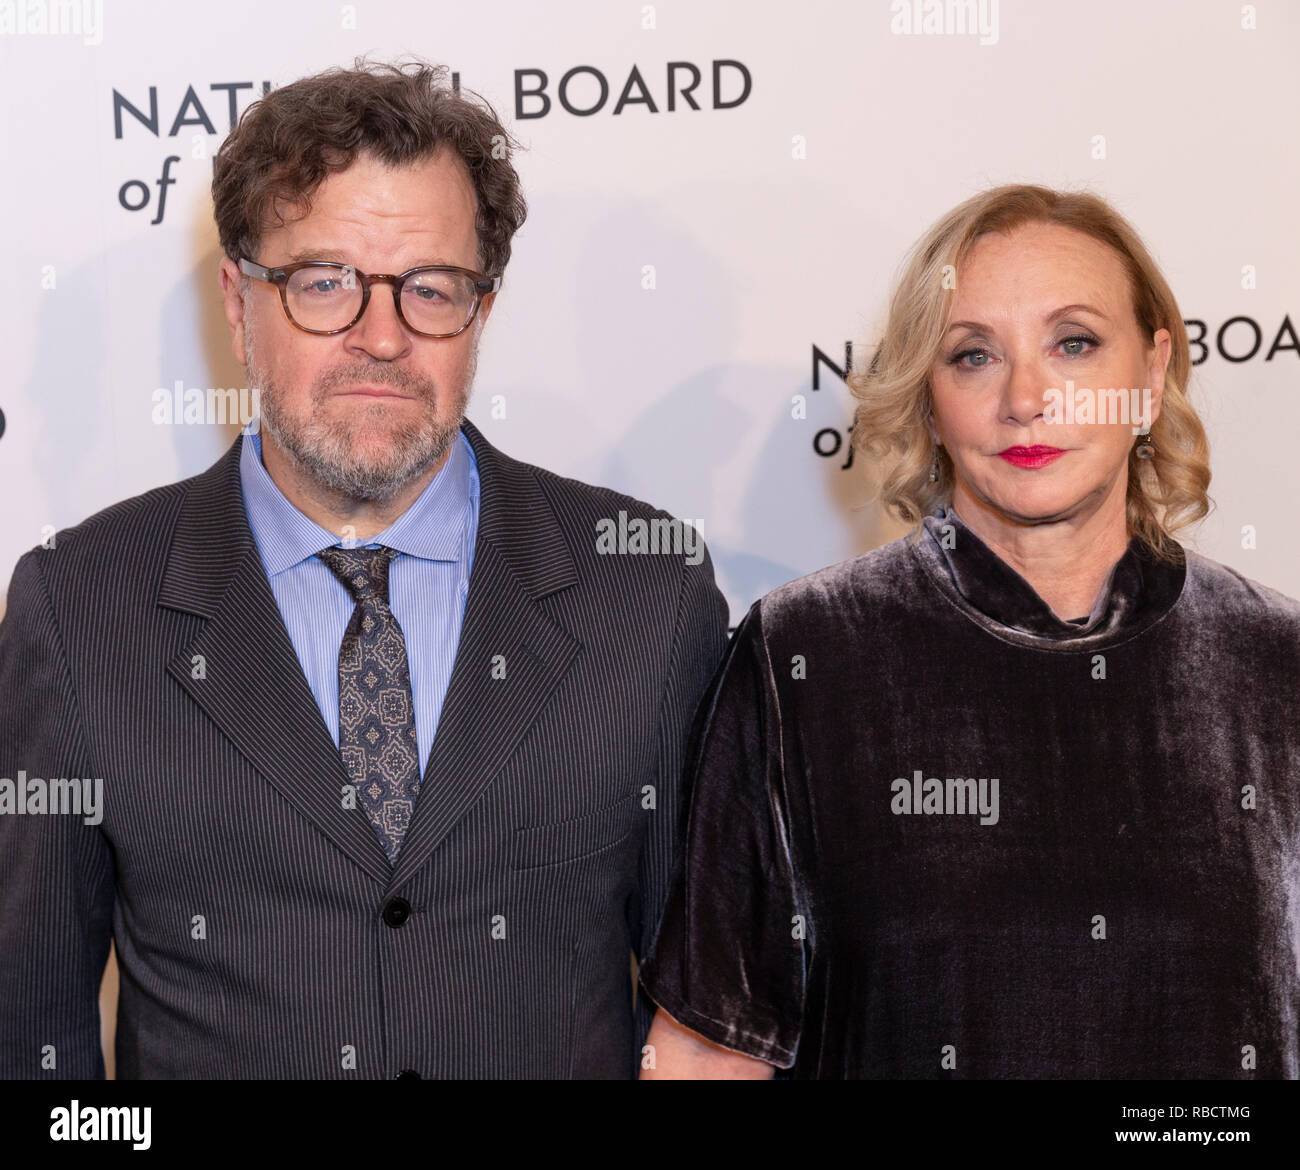 New York, NY - January 8, 2019: Kenneth Lonergan and J. Smith-Cameron attend National Board of Review 2019 Gala at Cipriani 42nd street Credit: lev radin/Alamy Live News - Stock Image